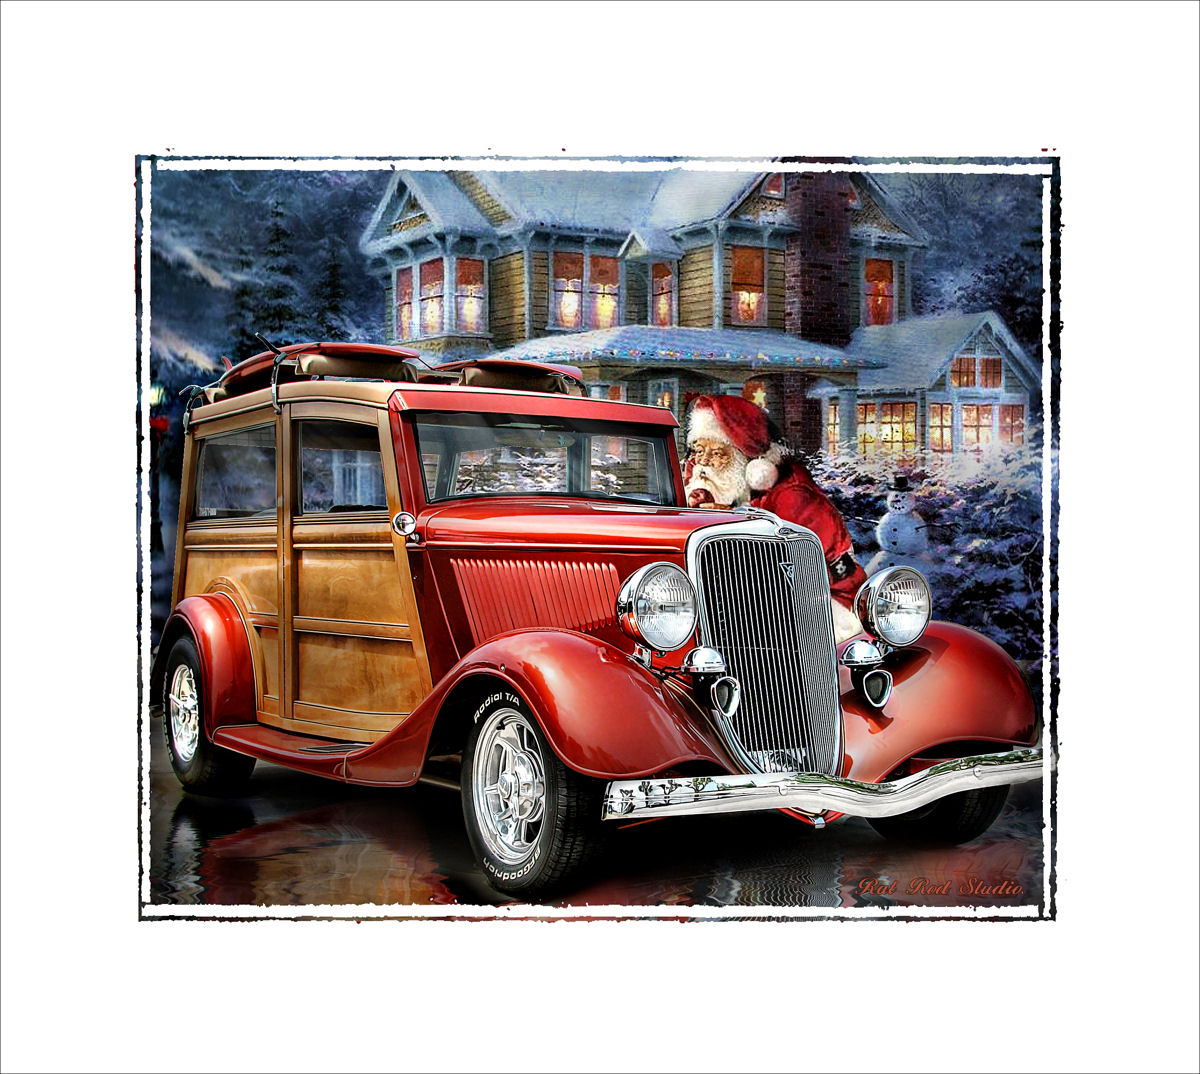 Click image for larger version  Name:Guess What Santa Wants For Christmas.jpg Views:149 Size:282.8 KB ID:35214